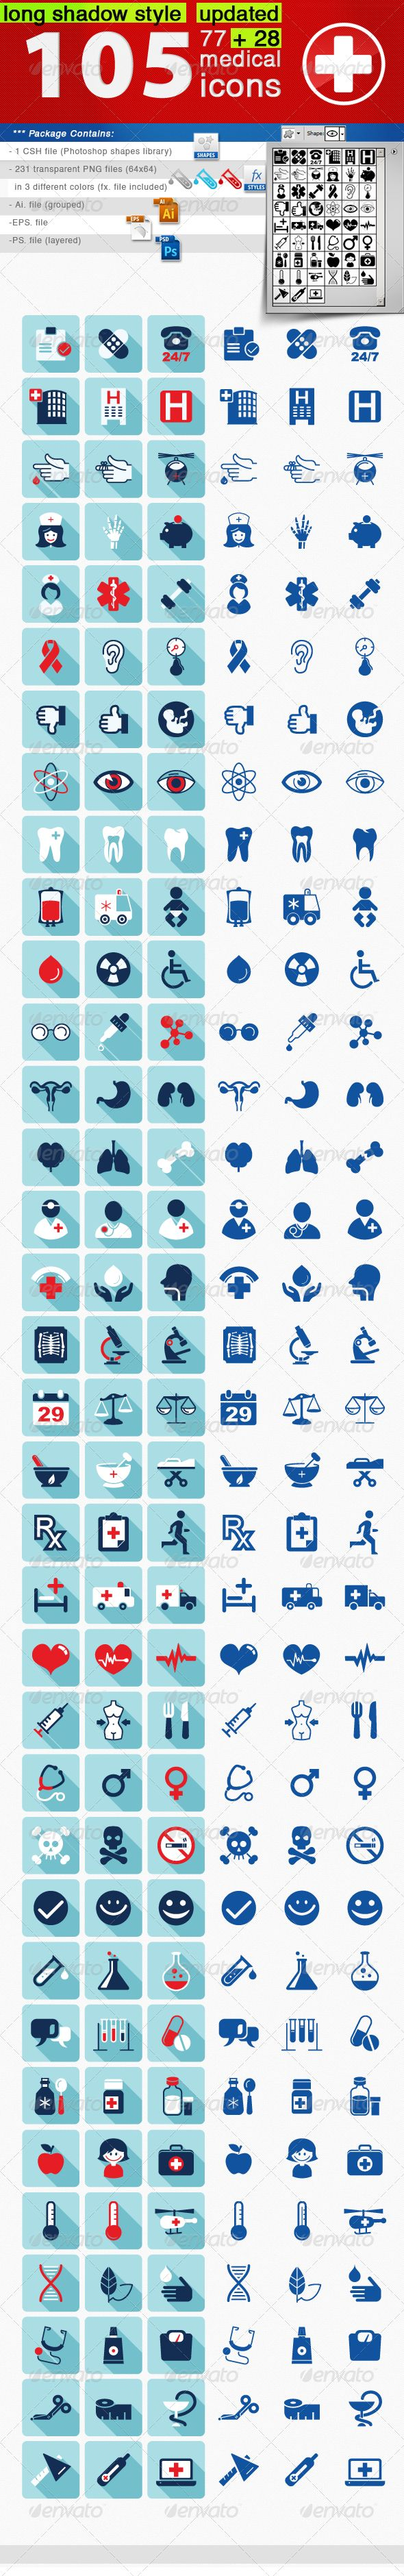 105 Medical Icons Set — Photoshop PSD #pharmacy #ambulance • Available here → https://graphicriver.net/item/105-medical-icons-set/4657372?ref=pxcr